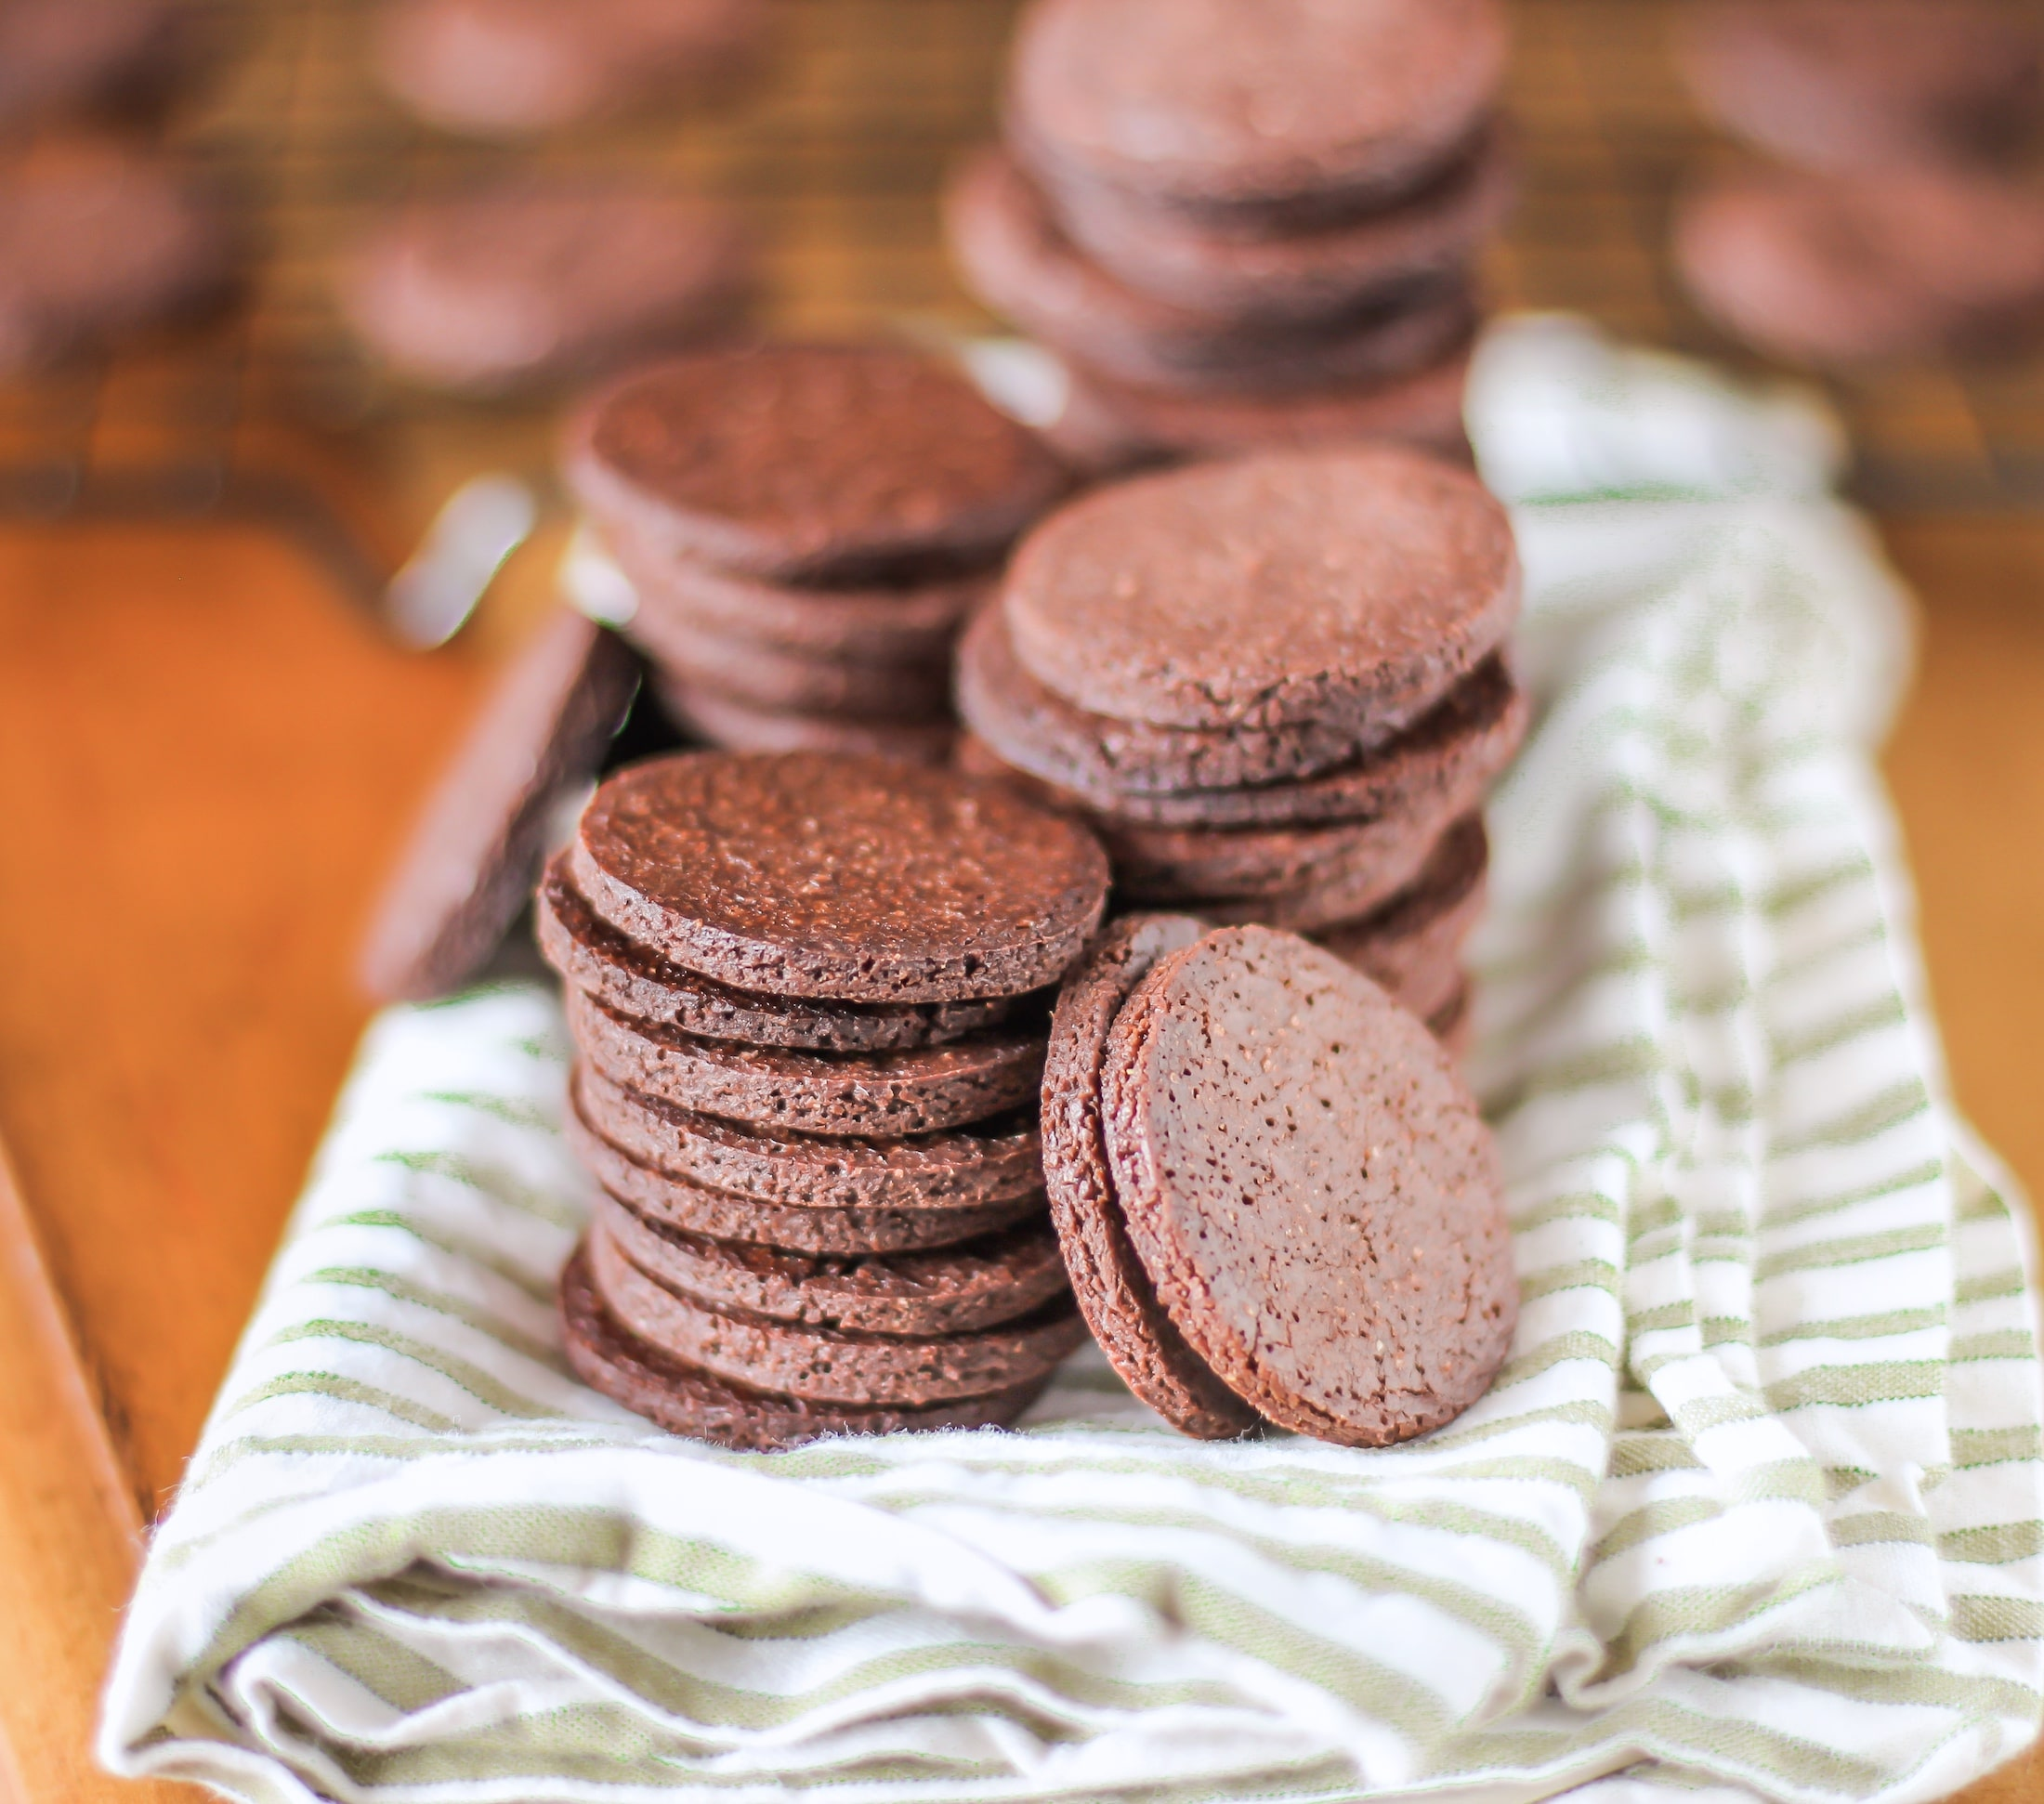 Healthy Chocolate Quinoa Crackers - Desserts With Benefits